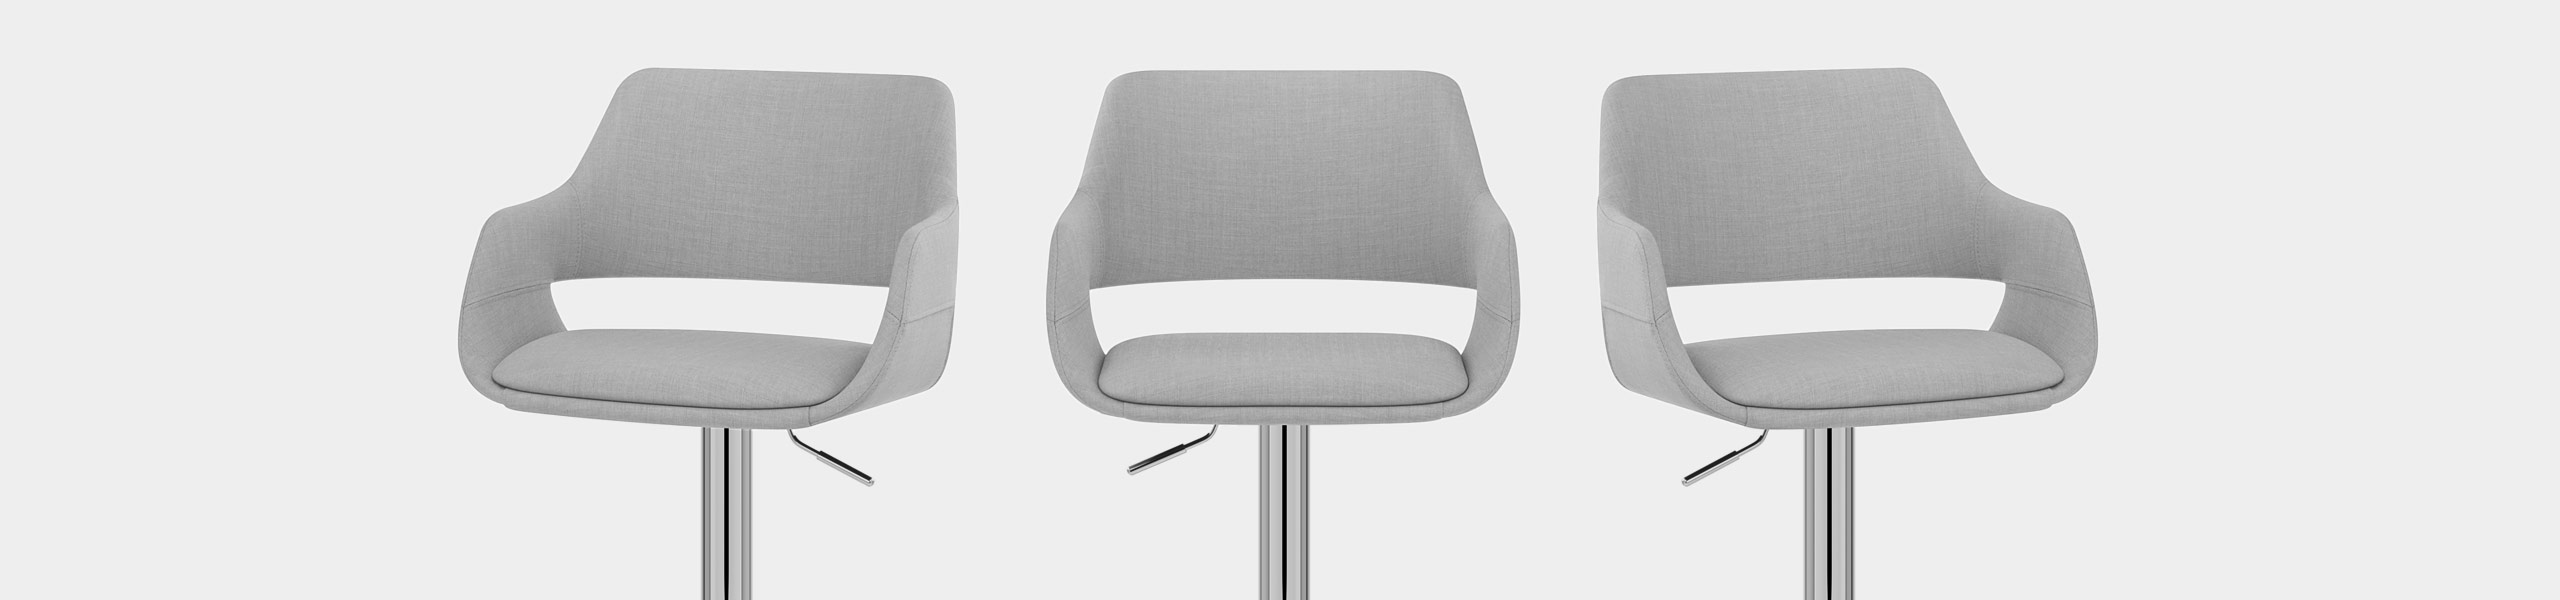 Nuevo Bar Stool Grey Fabric Video Banner